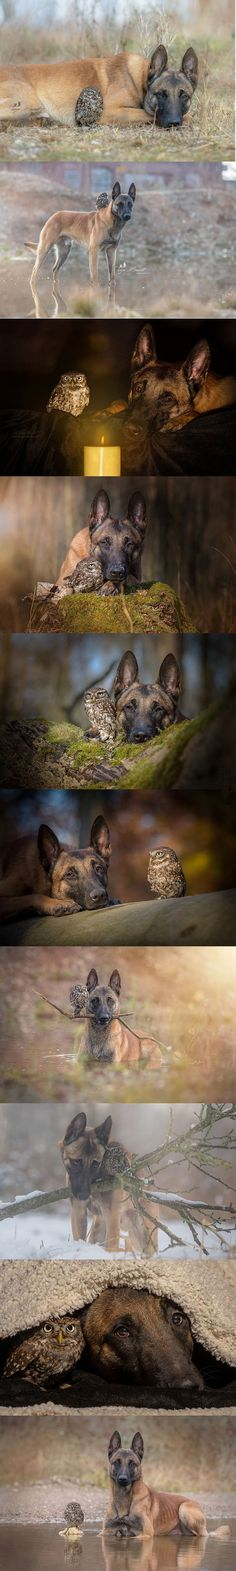 Best Friends #cute #dog #cat #pets